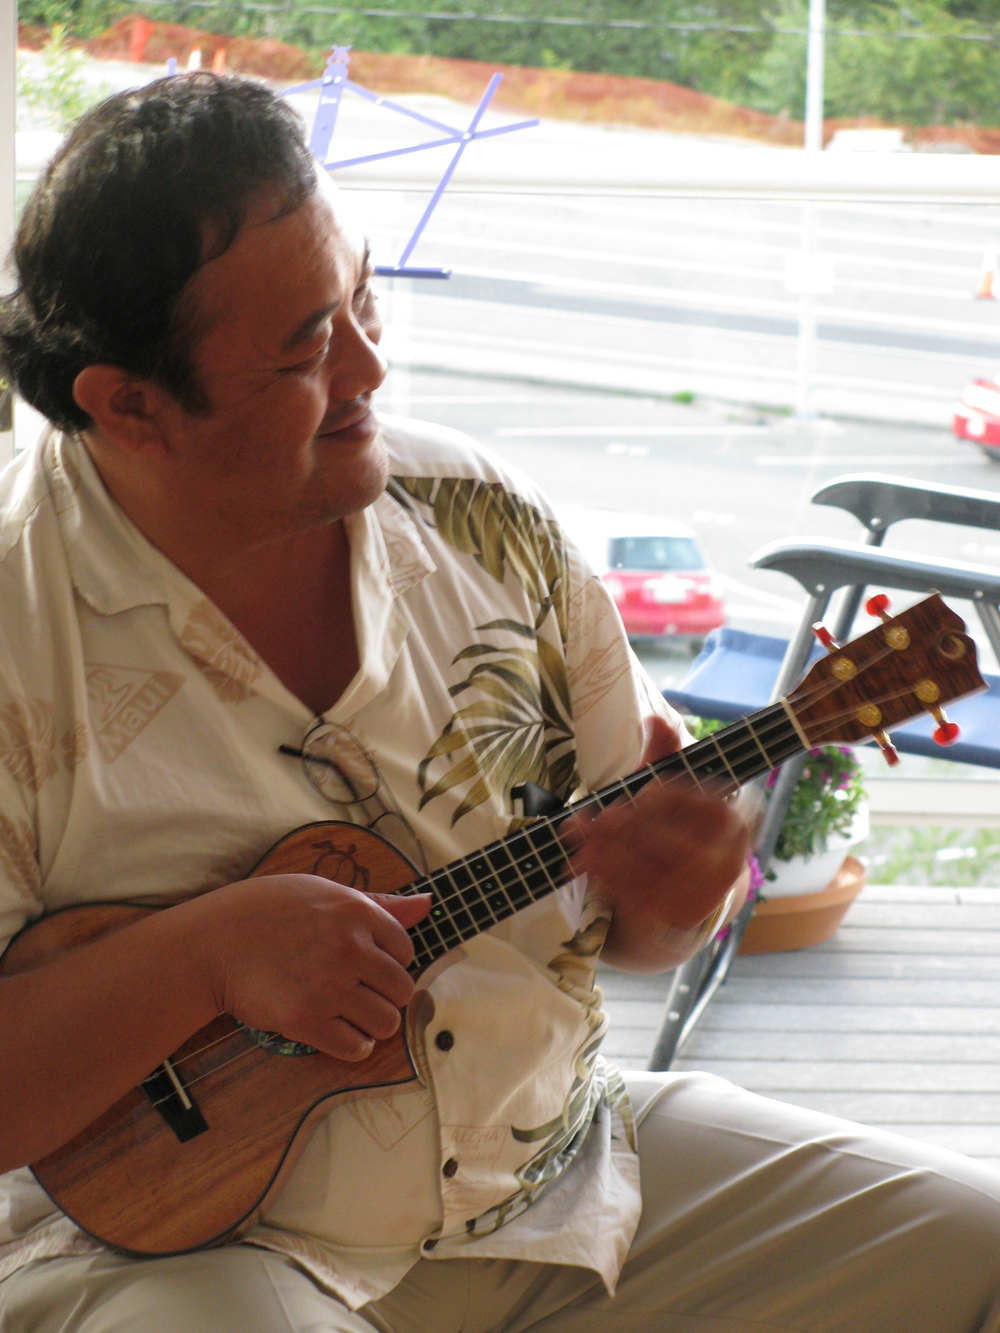 Moses Kamai enjoying his Oceana Ukulele